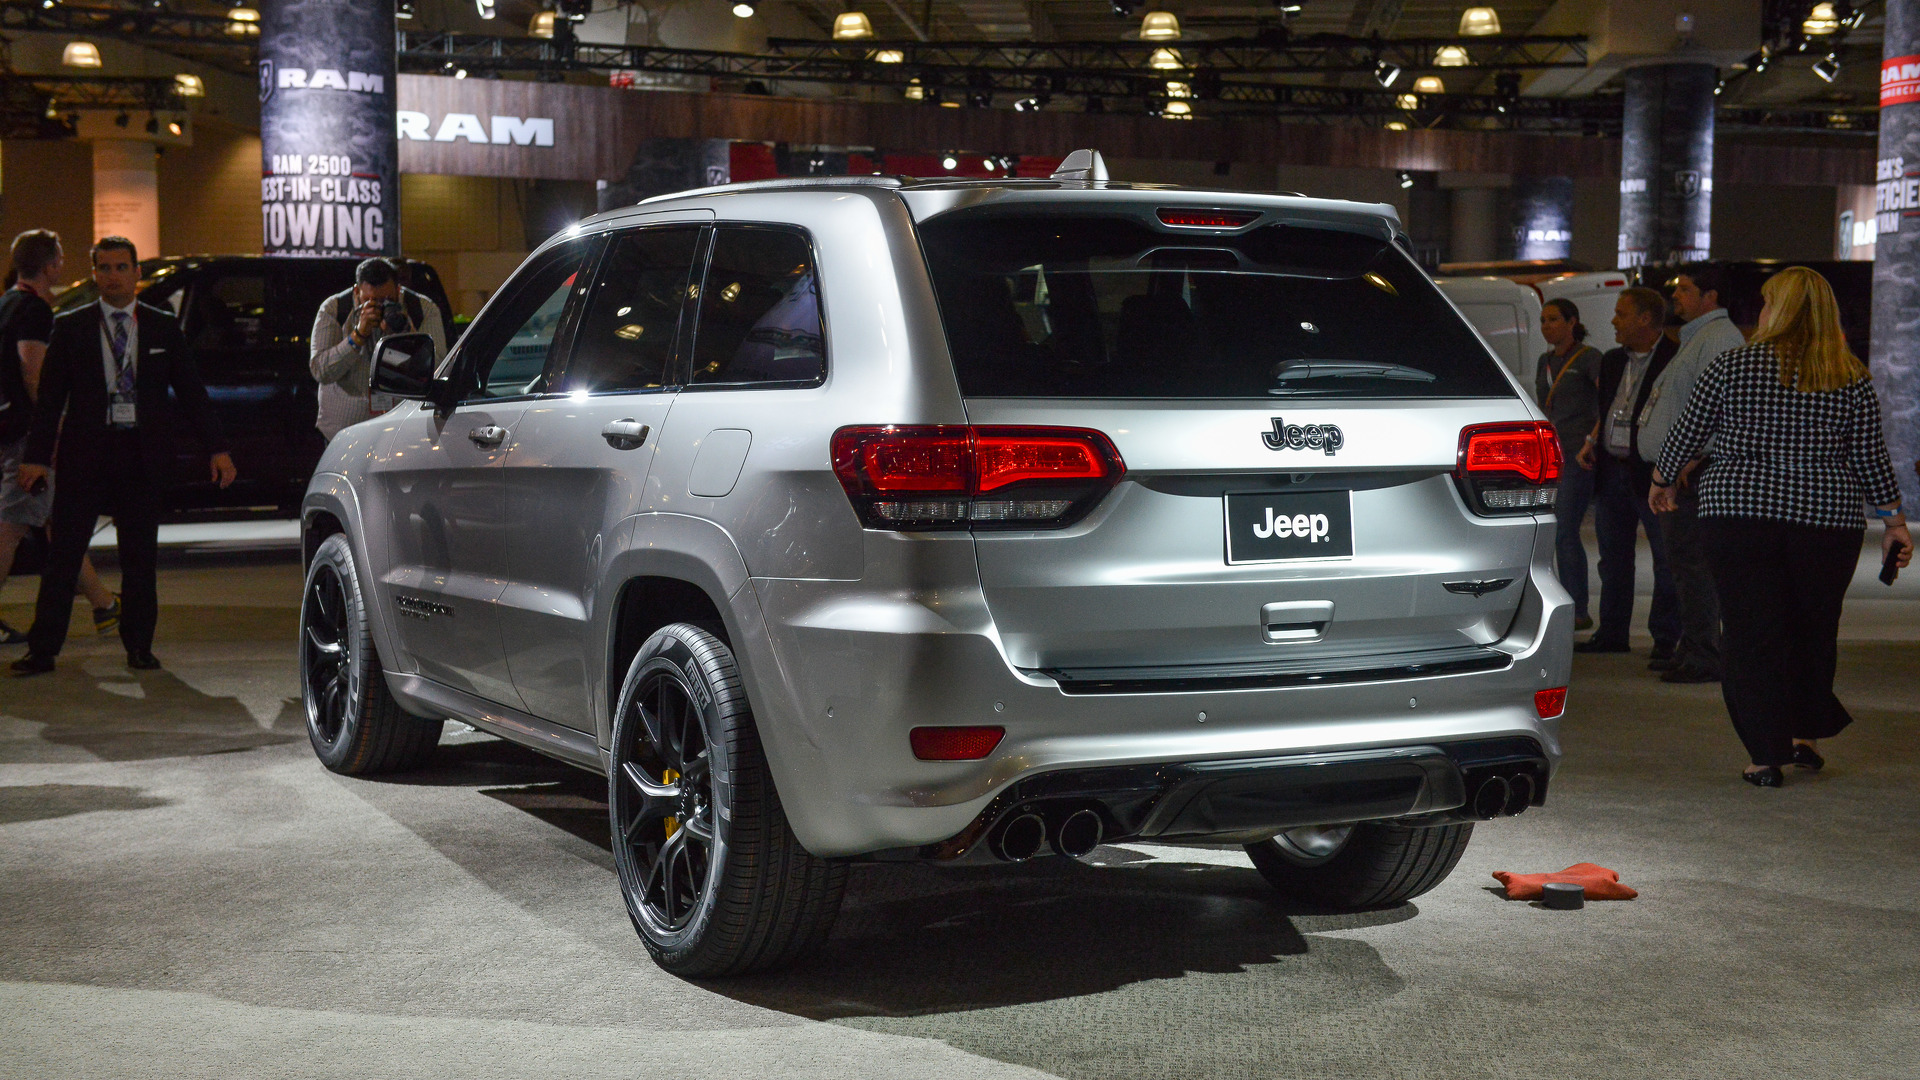 10 More Things To Know About The Jeep Grand Cherokee Trackhawk